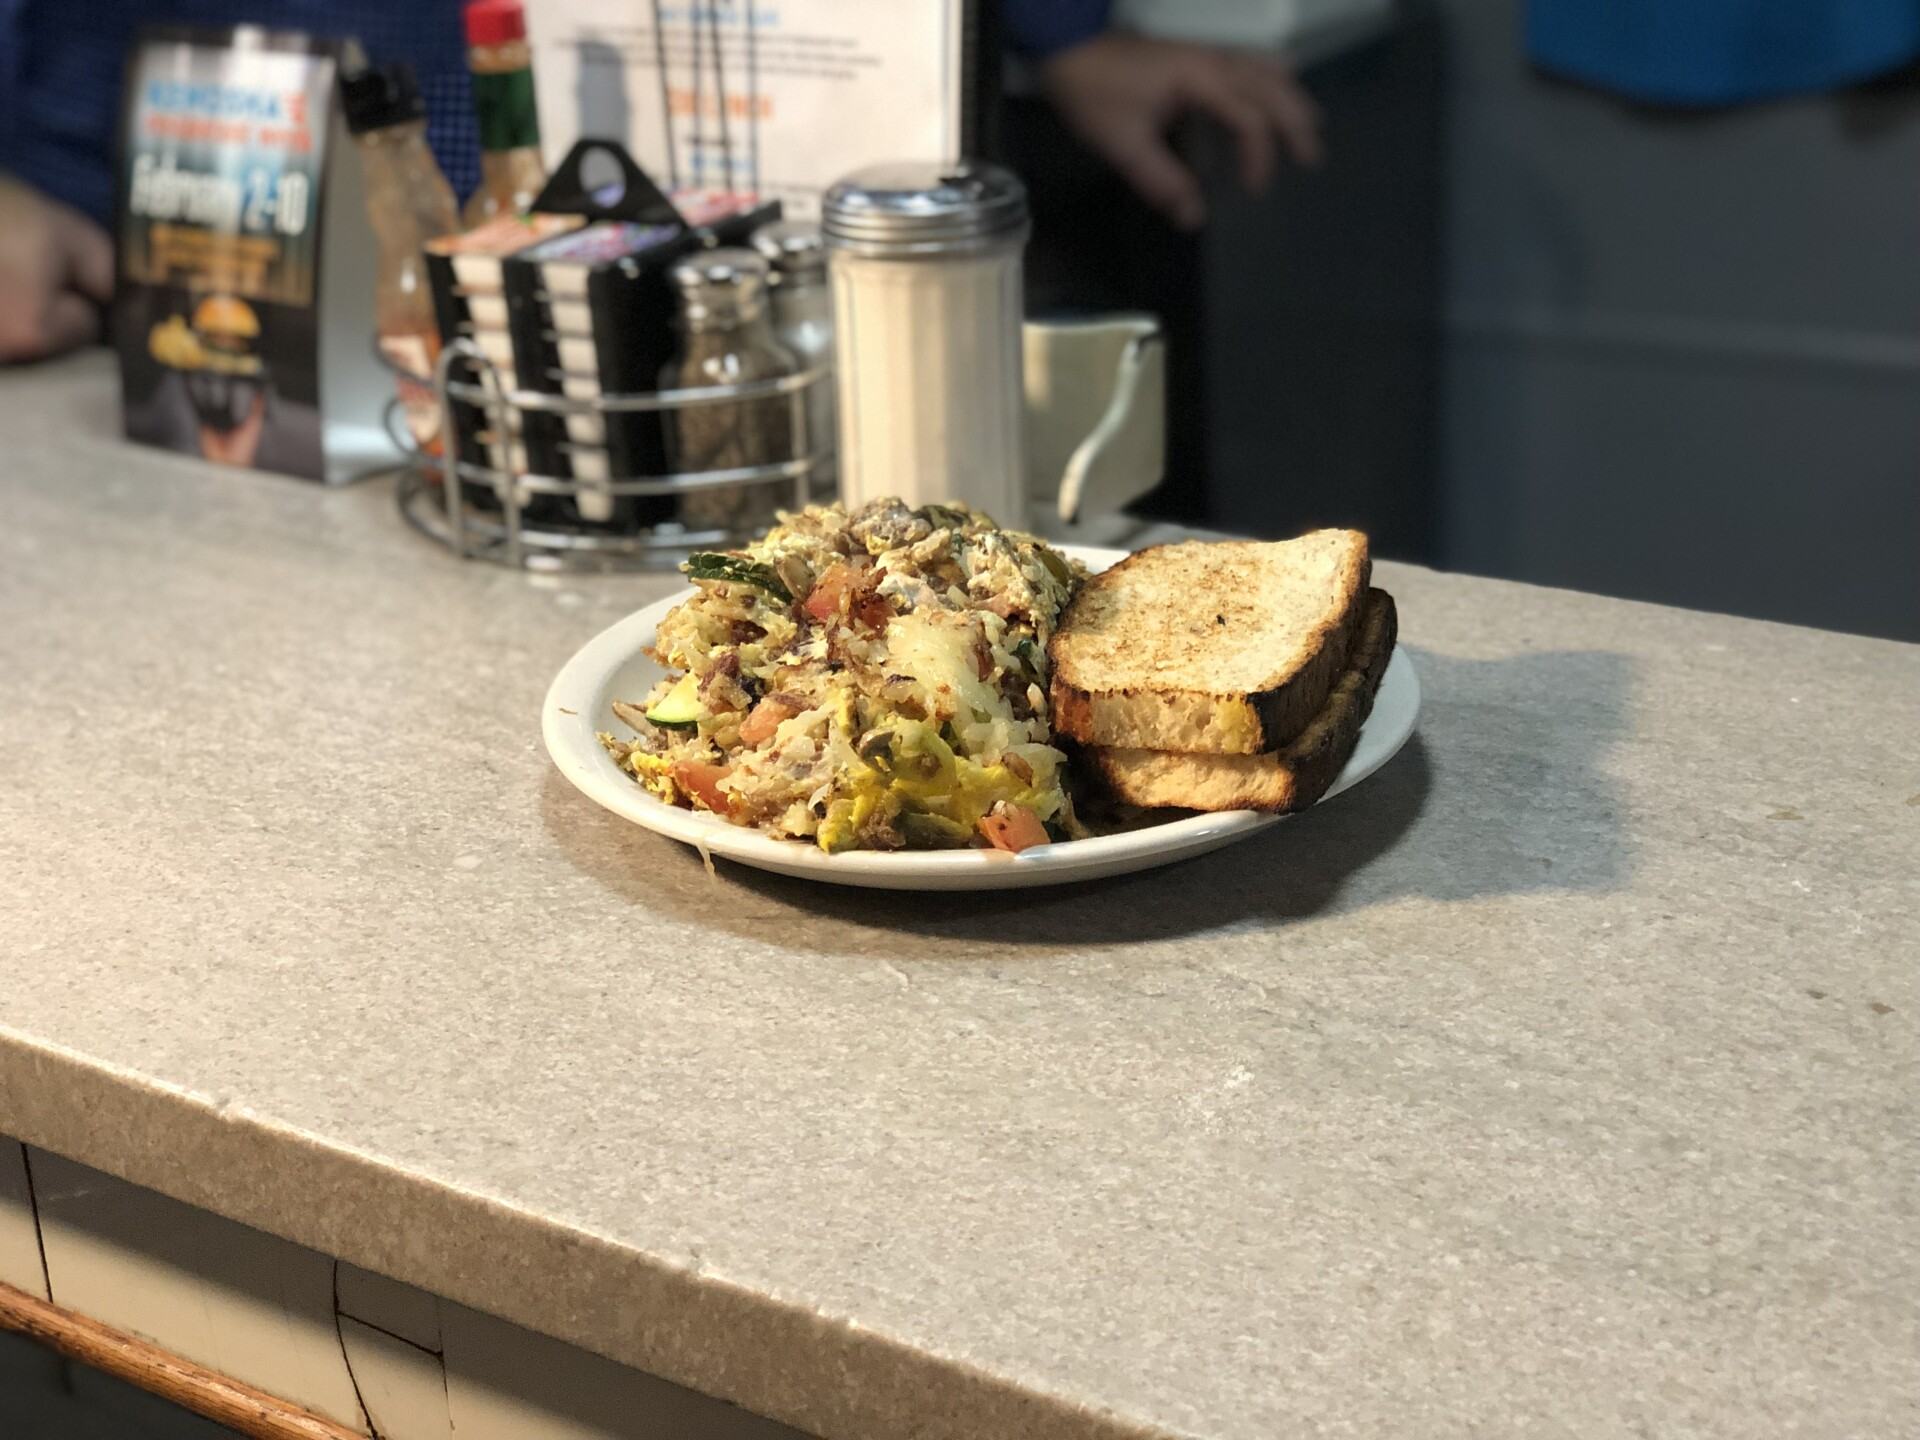 Kenosha kicked off Restaurant Week on Saturday, with deals on meals highlighting the city's evolving dining scene.